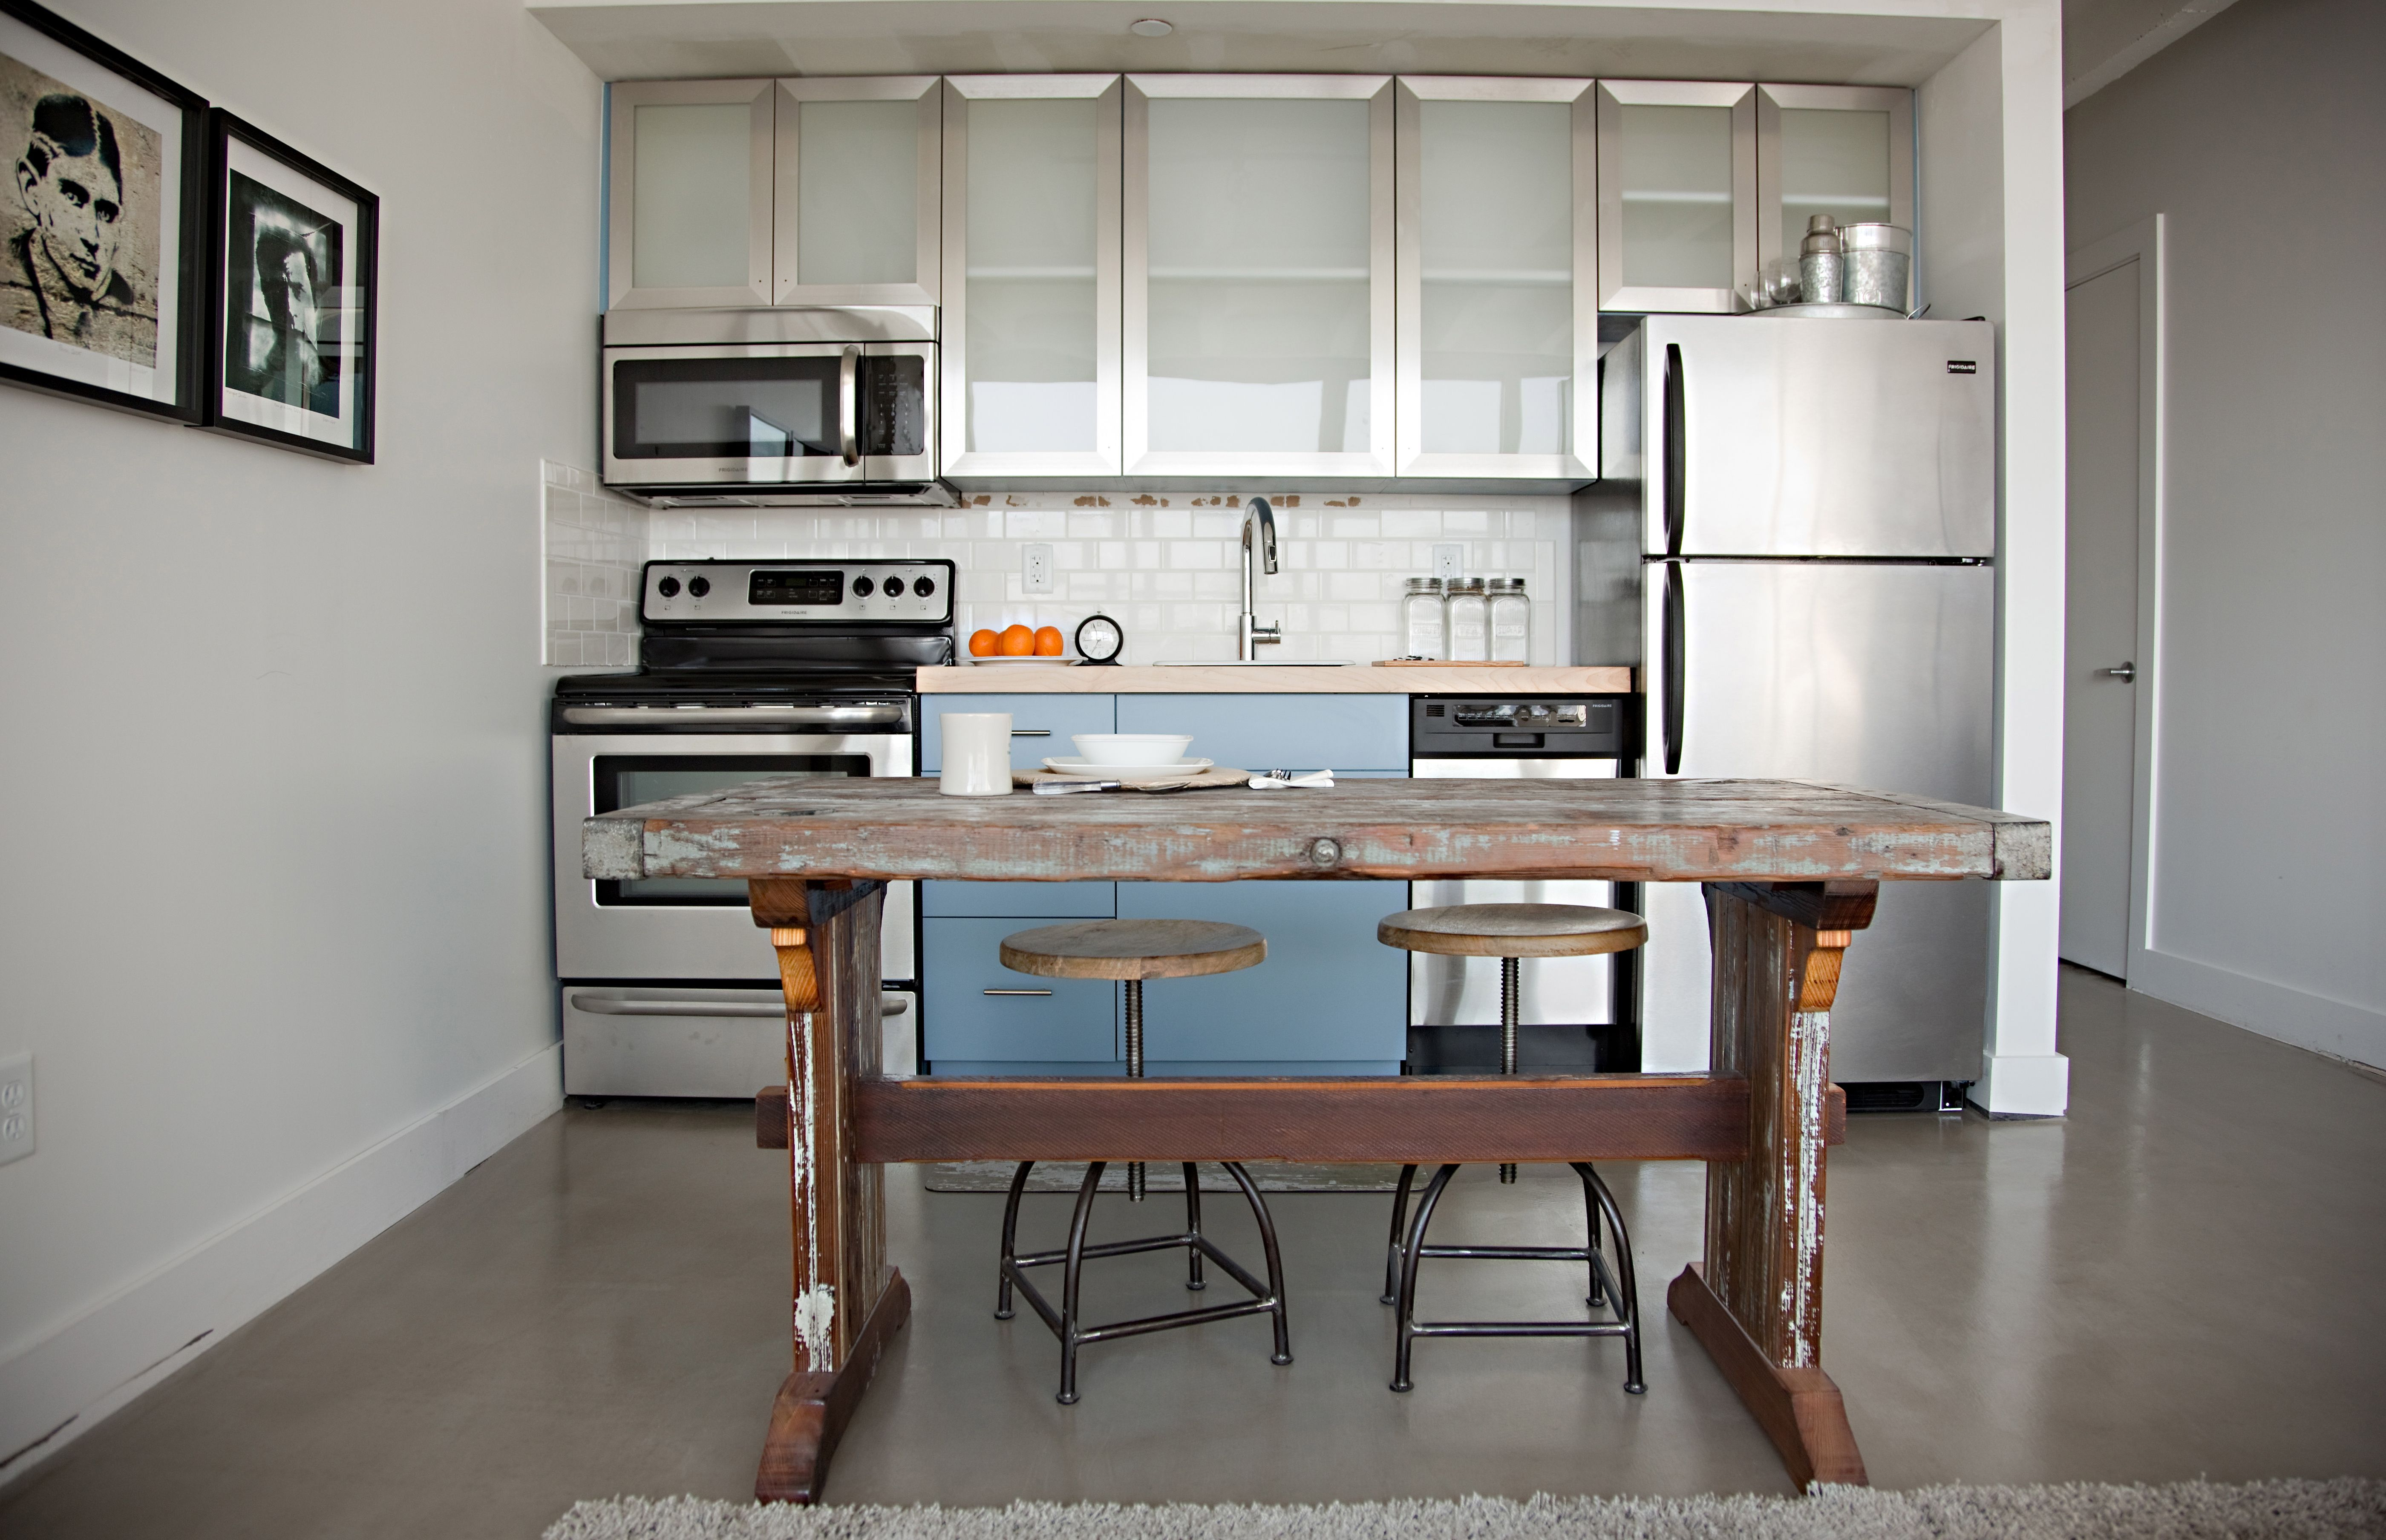 Kitchen Studio : Pin by Natalie on When we move out of our shoebox  Pinterest